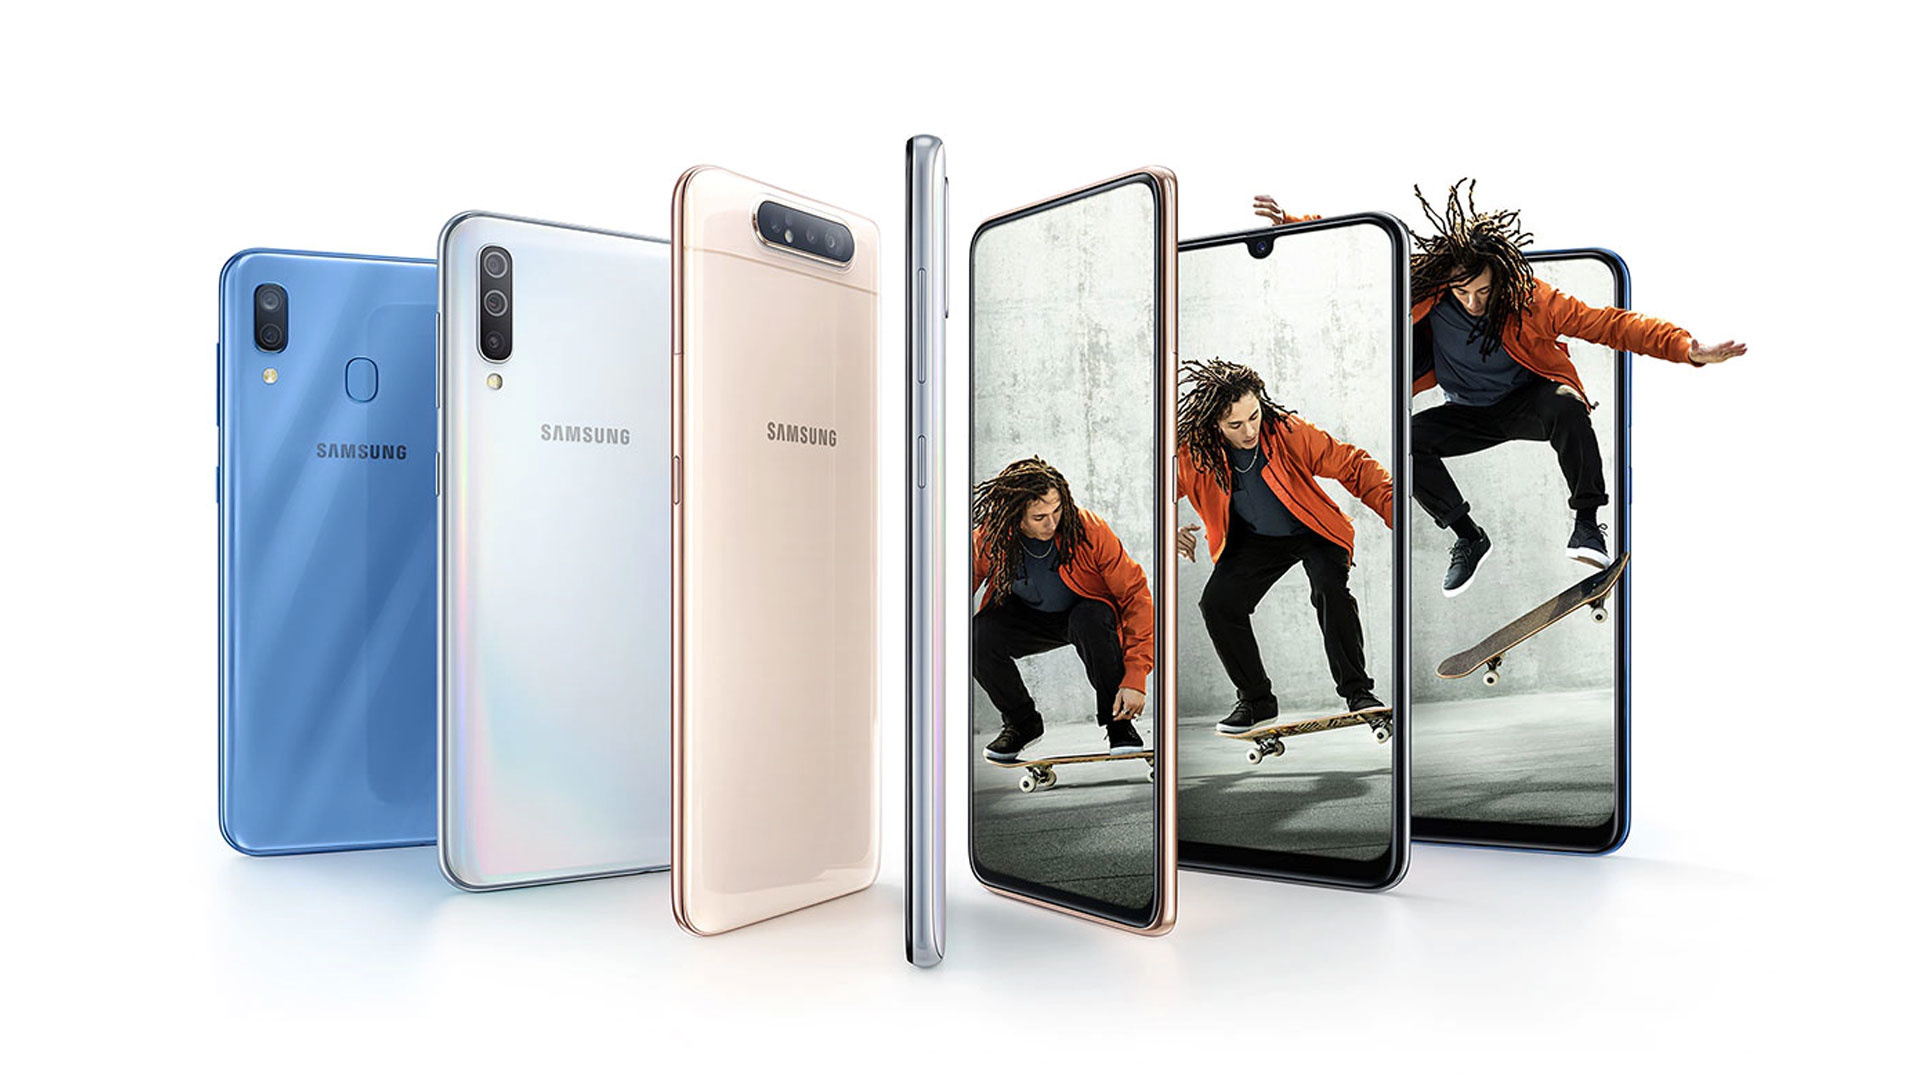 A-serie Samsung groot succes